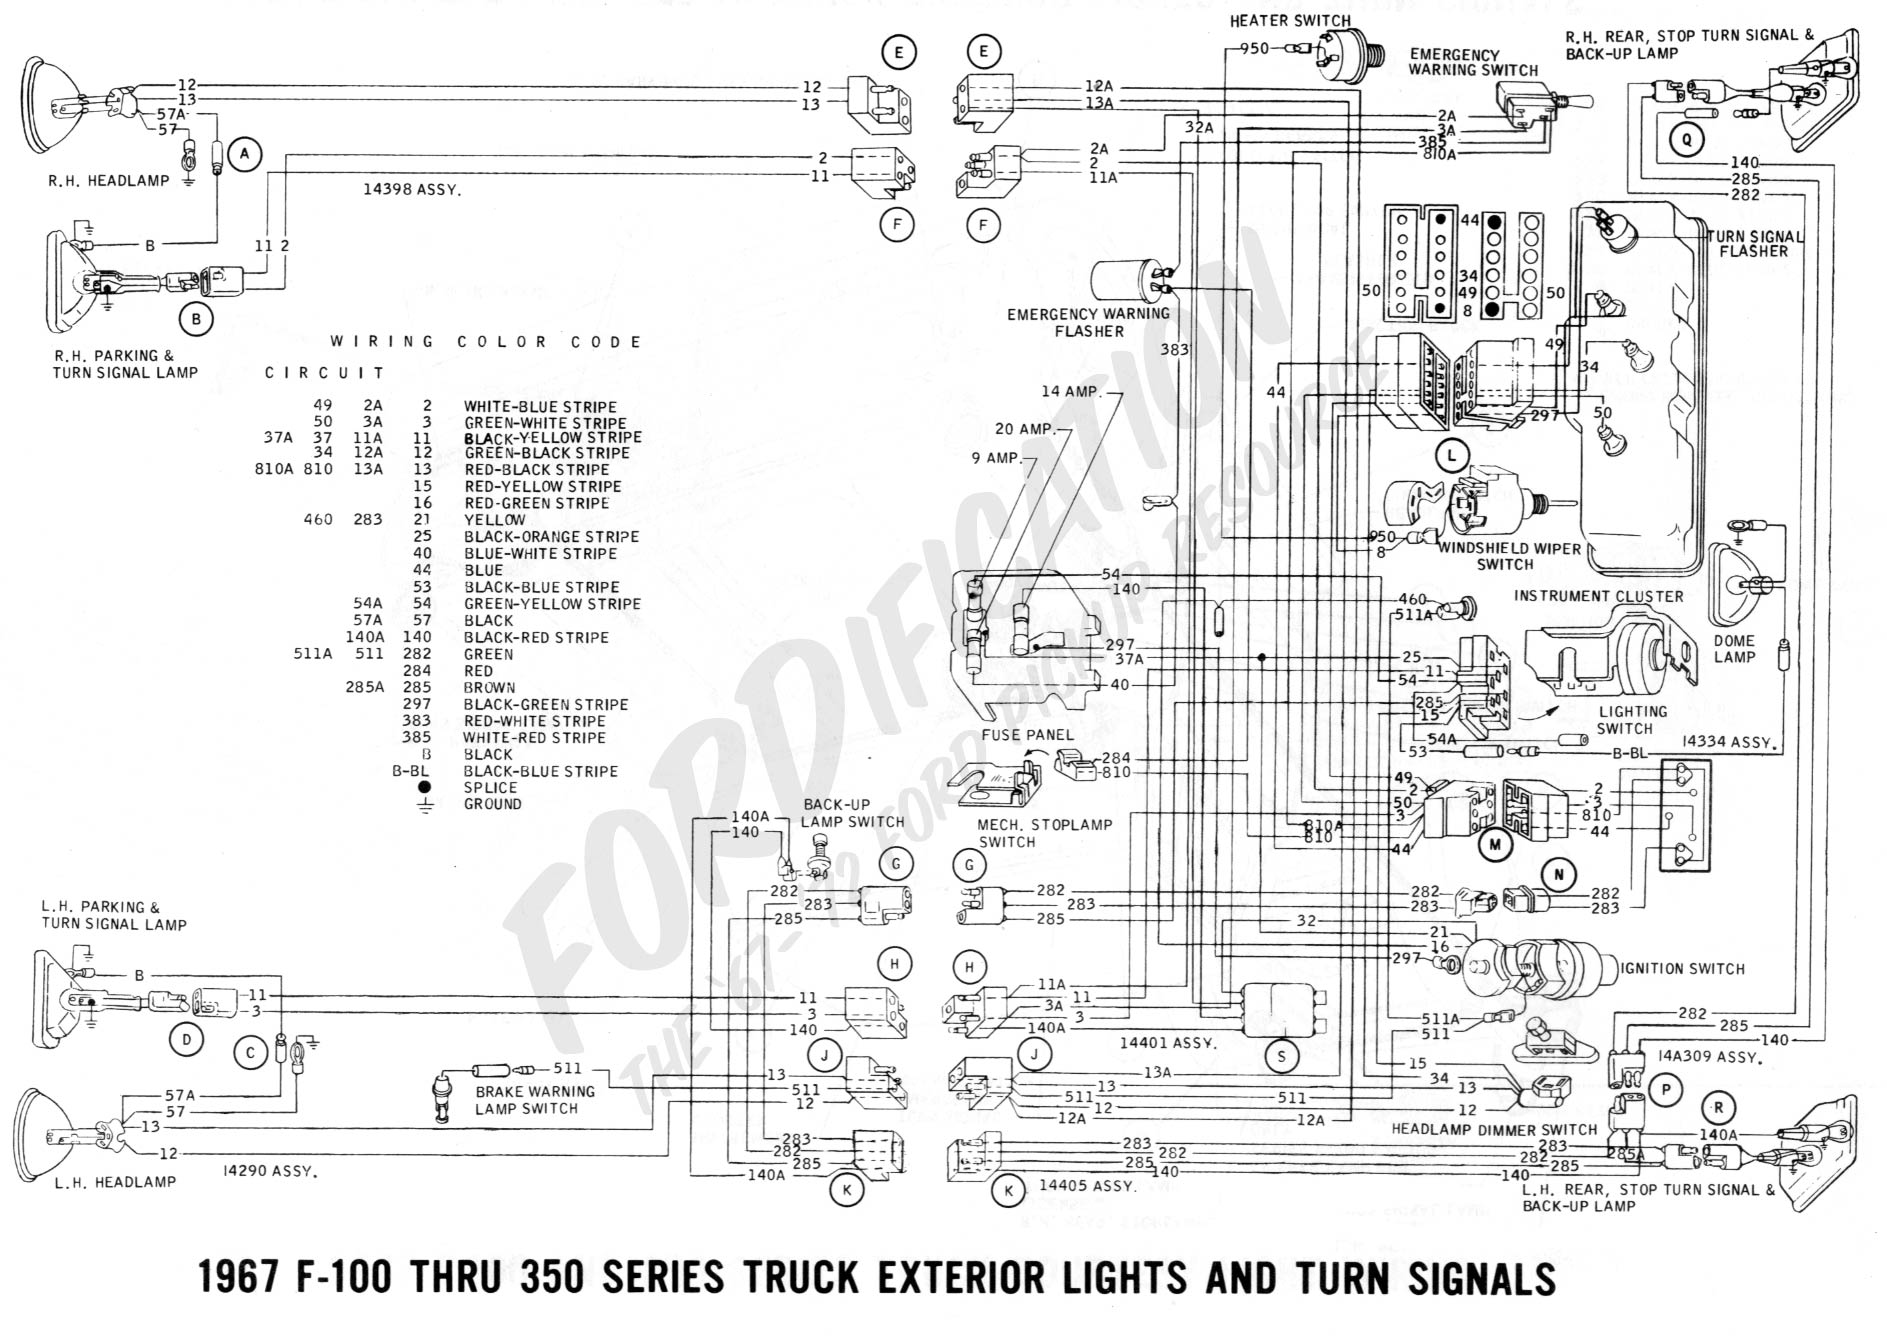 2007 Chevy Equinox Turn Signal Wiring Diagram 2011 Chevrolet Impala Ford Truck Technical Drawings And Schematics Section H Rh Fordification Com 2008 Interior